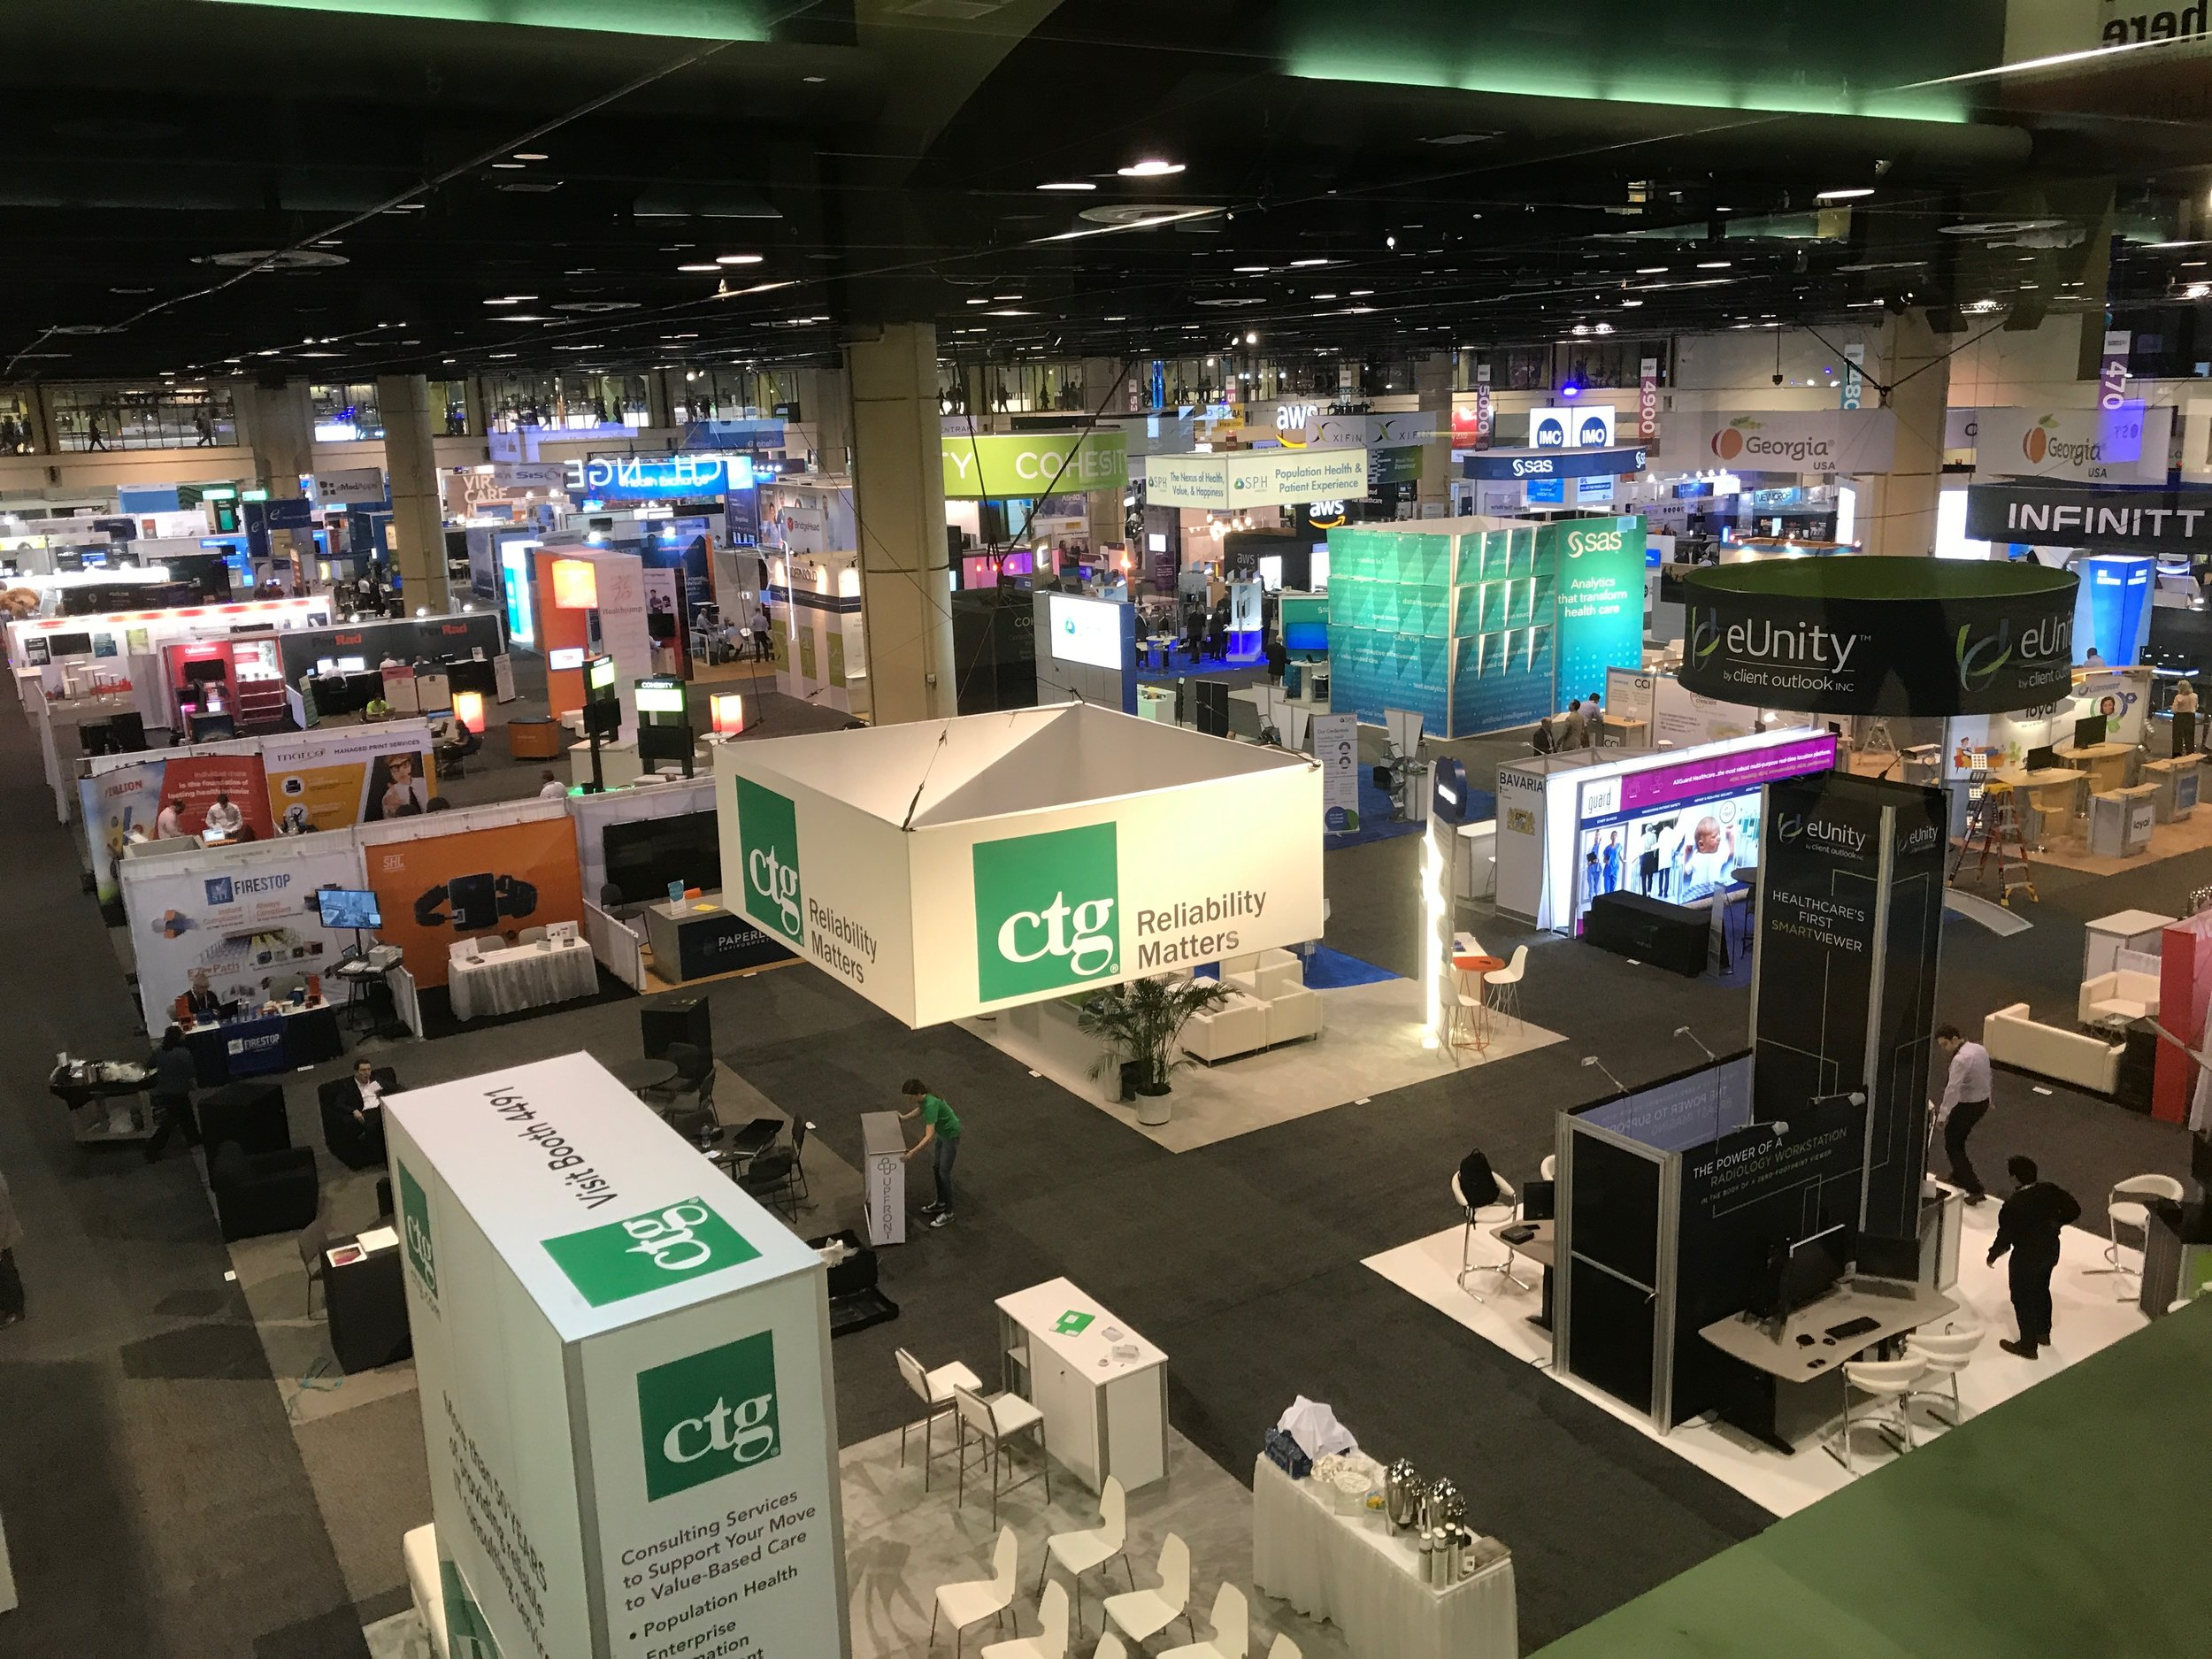 A small portion of the exhibit floor